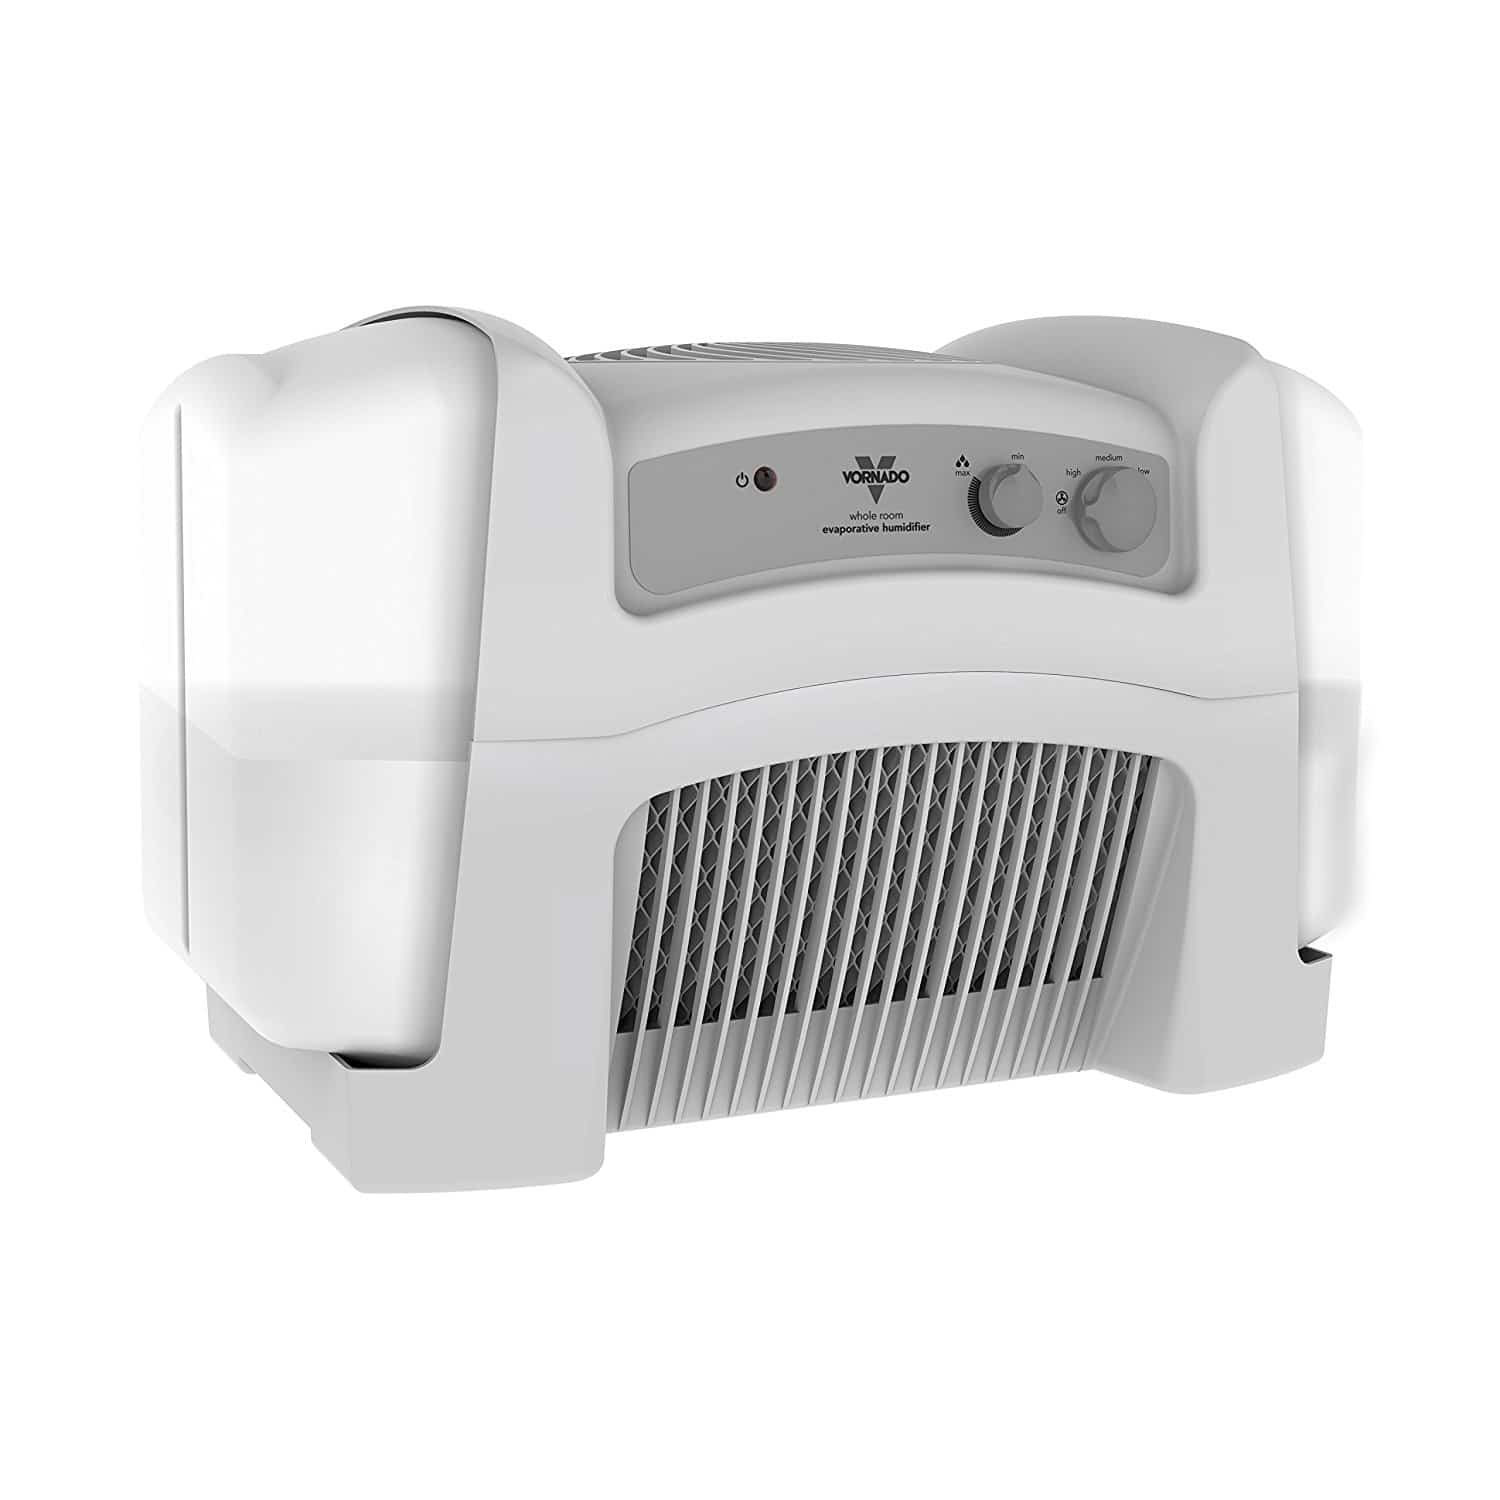 Top 5 Best Whole House Humidifiers in Buying Guide January